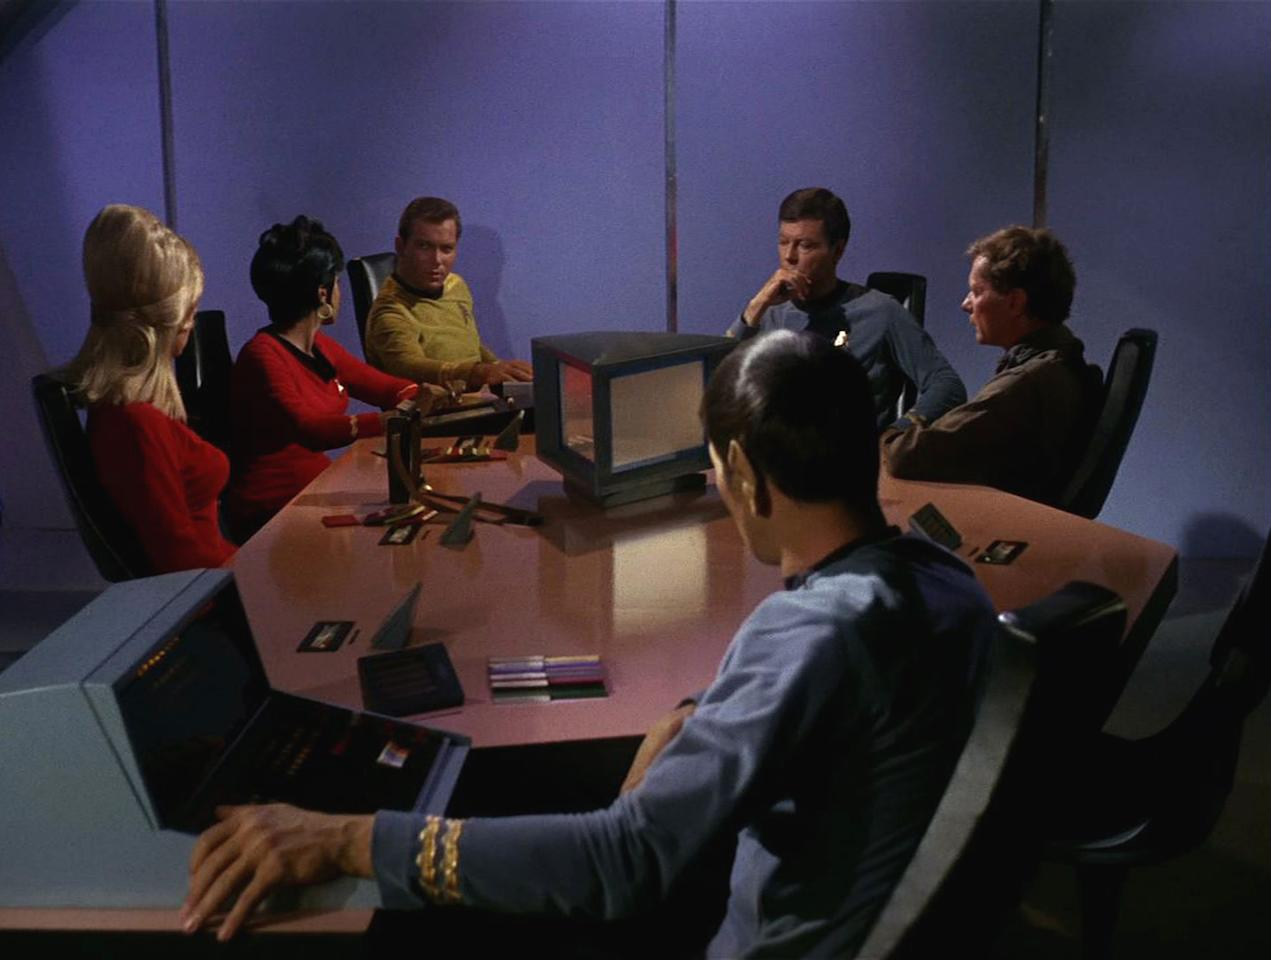 The crew of the Starship Enterprise sit around a table in a scene from 'The Man Trap,' the premiere episode of 'Star Trek,' which aired on September 8, 1966. Clockwise from left are American actress Grace Lee Whitney as Yeoman Rand, American actress Nichelle Nichols as Uhura, Canadian actor William Shatner as Captain James T. Kirk, American actor DeForest Kelley (1920 - 1999) as Dr. Leonard 'Bones' McCoy, American actor Alfred Ryder (1916 - 1995) as Professor Robert Crater and American actor Leonard Nimoy as Mr. Spock. (Photo by CBS Photo Archive/Getty Images)